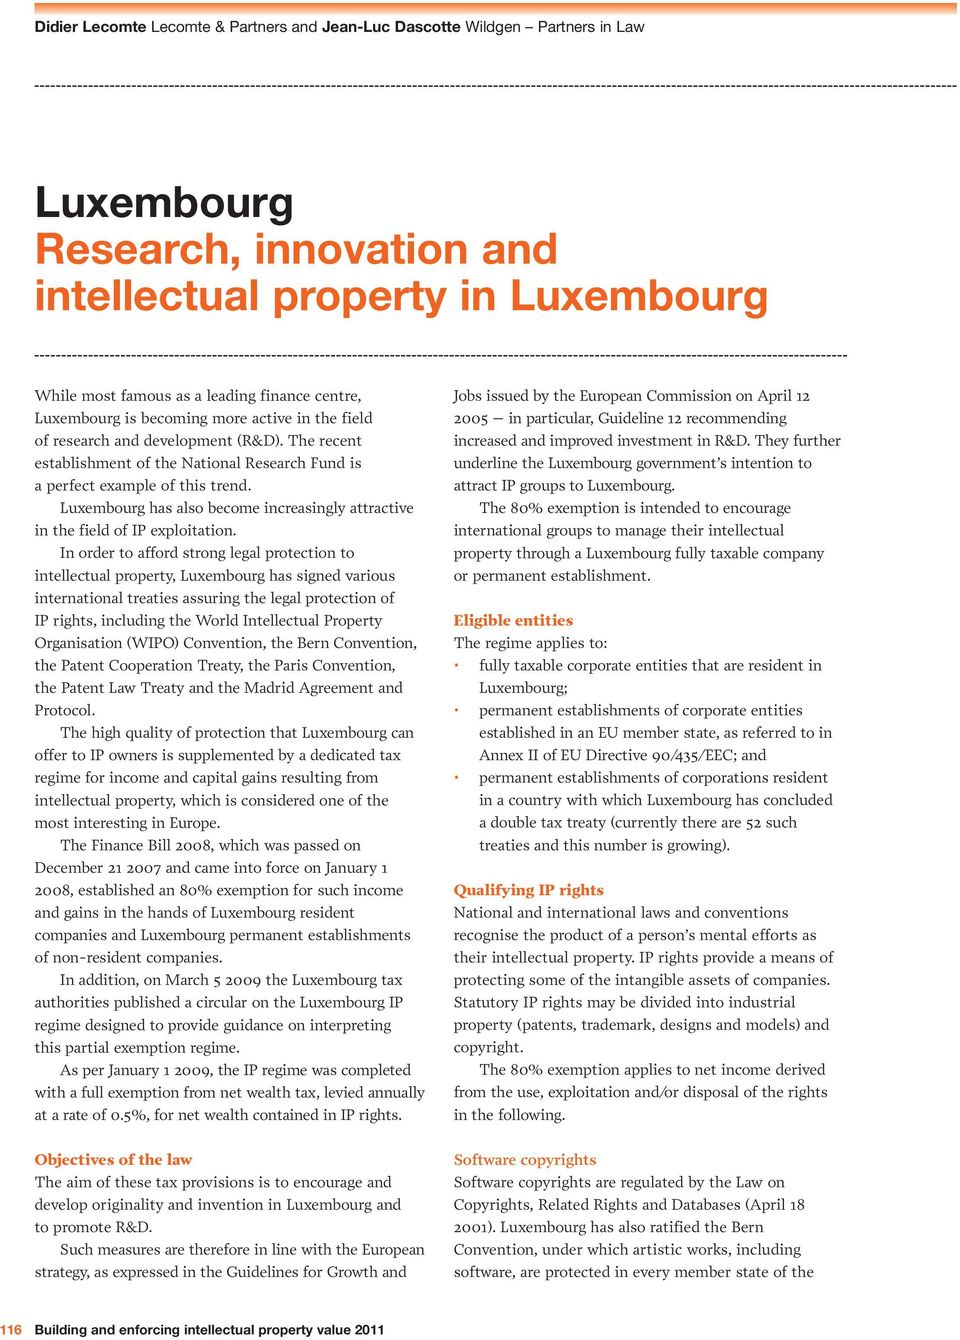 Luxembourg has also become increasingly attractive in the field of IP exploitation.